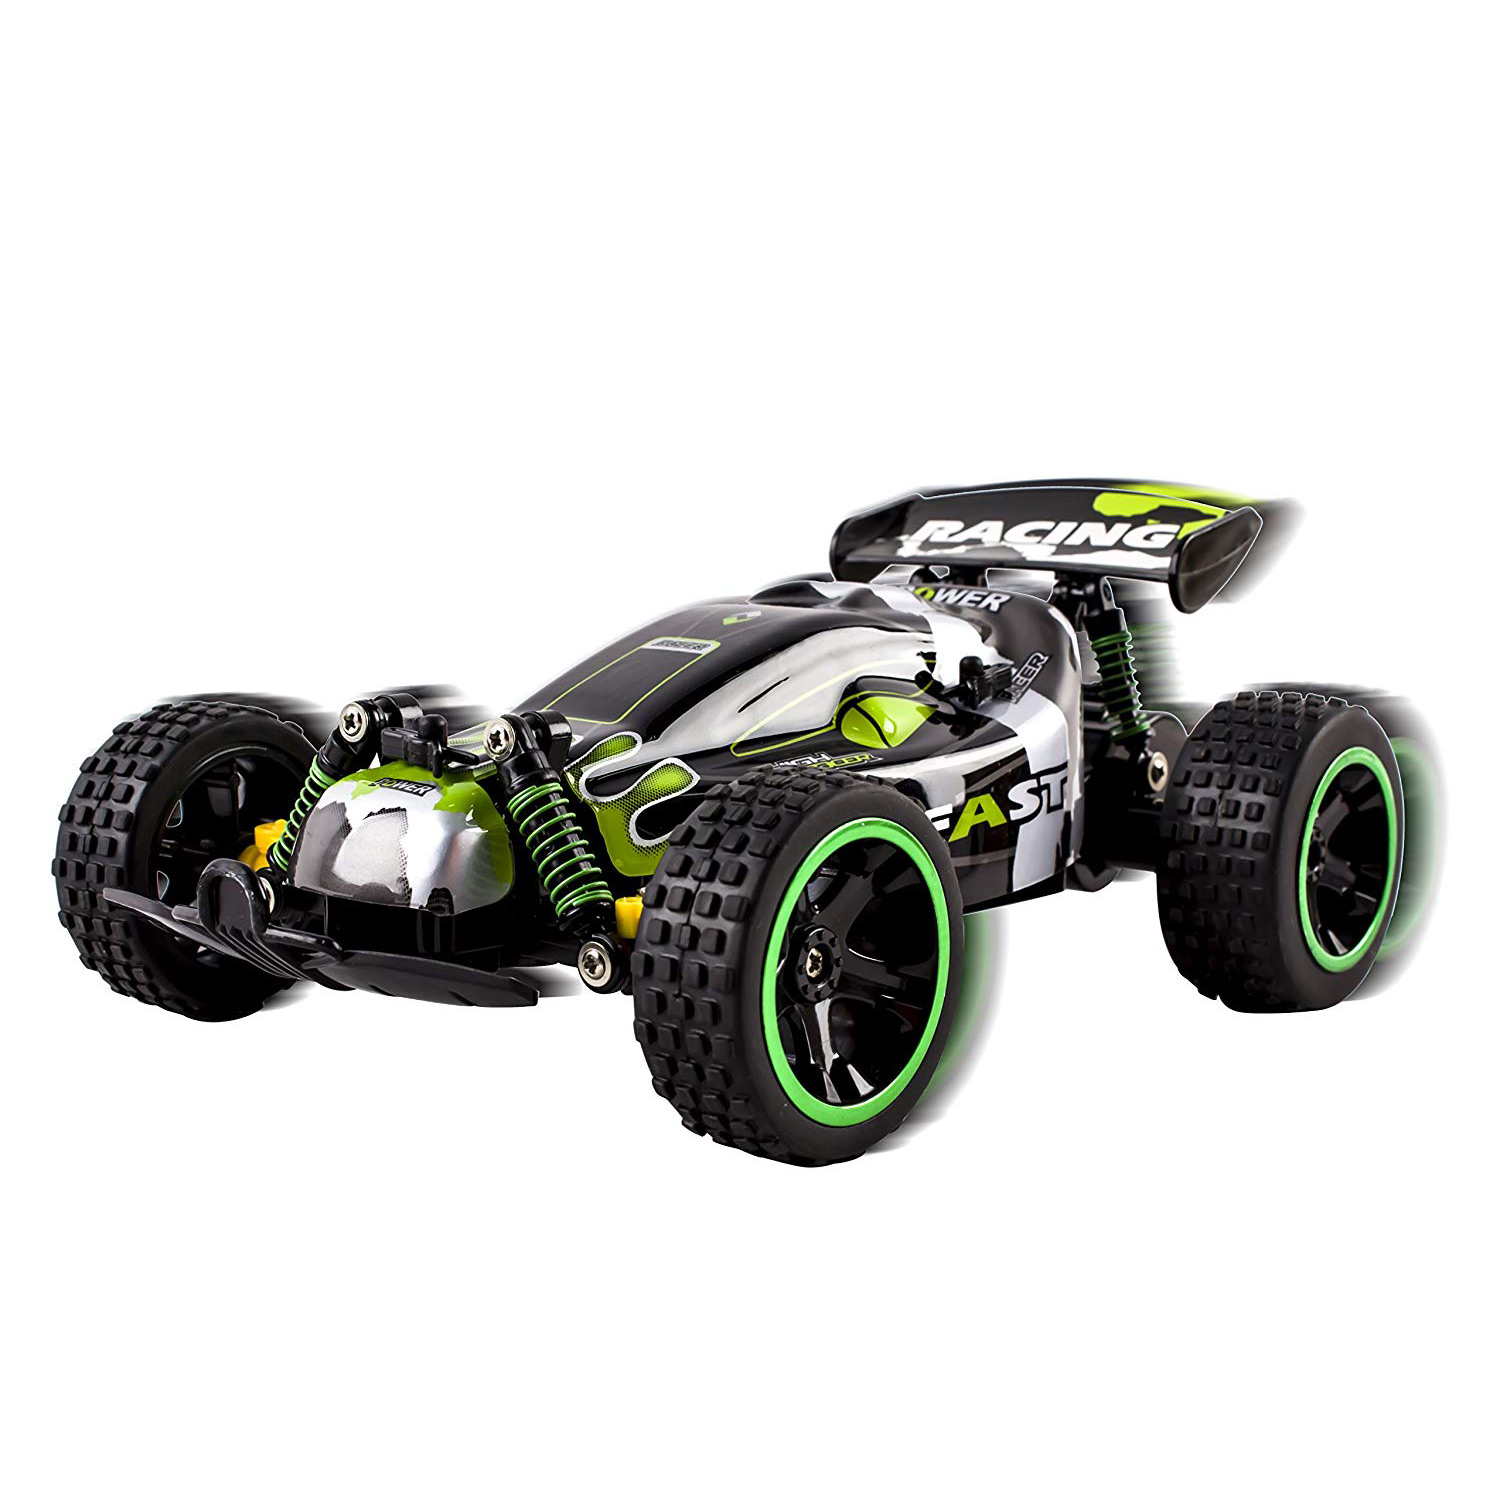 RC Buggy Truck 2.4Ghz System 1:18 Scale Remote Control High Speed Power With Working Off-Road Suspension Ready to Run Indoor And Outdoor Radio Car Toy Green